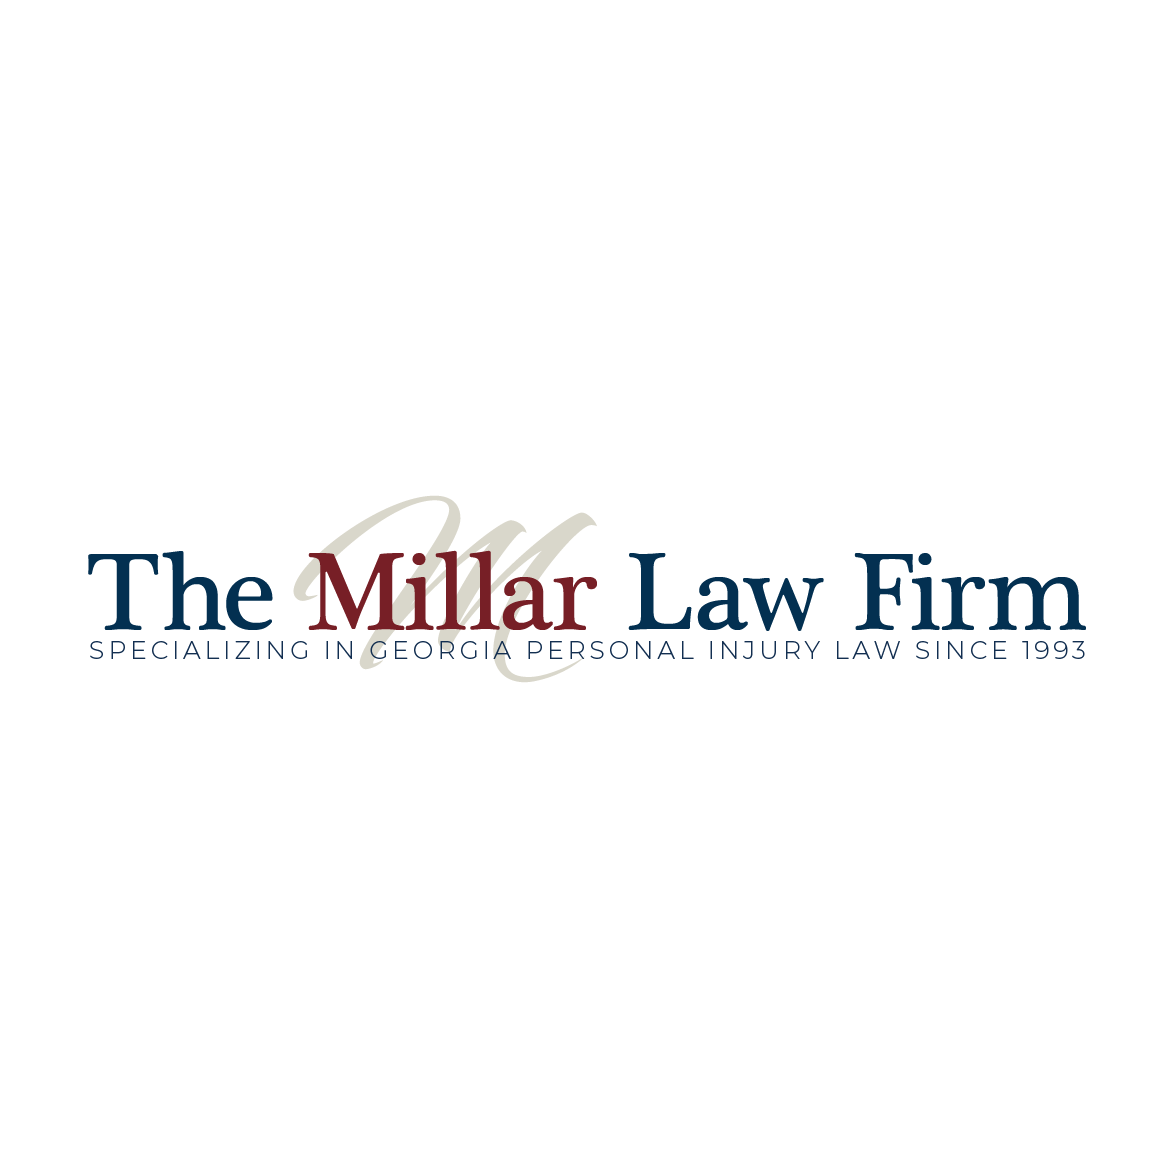 The Millar Law Firm image